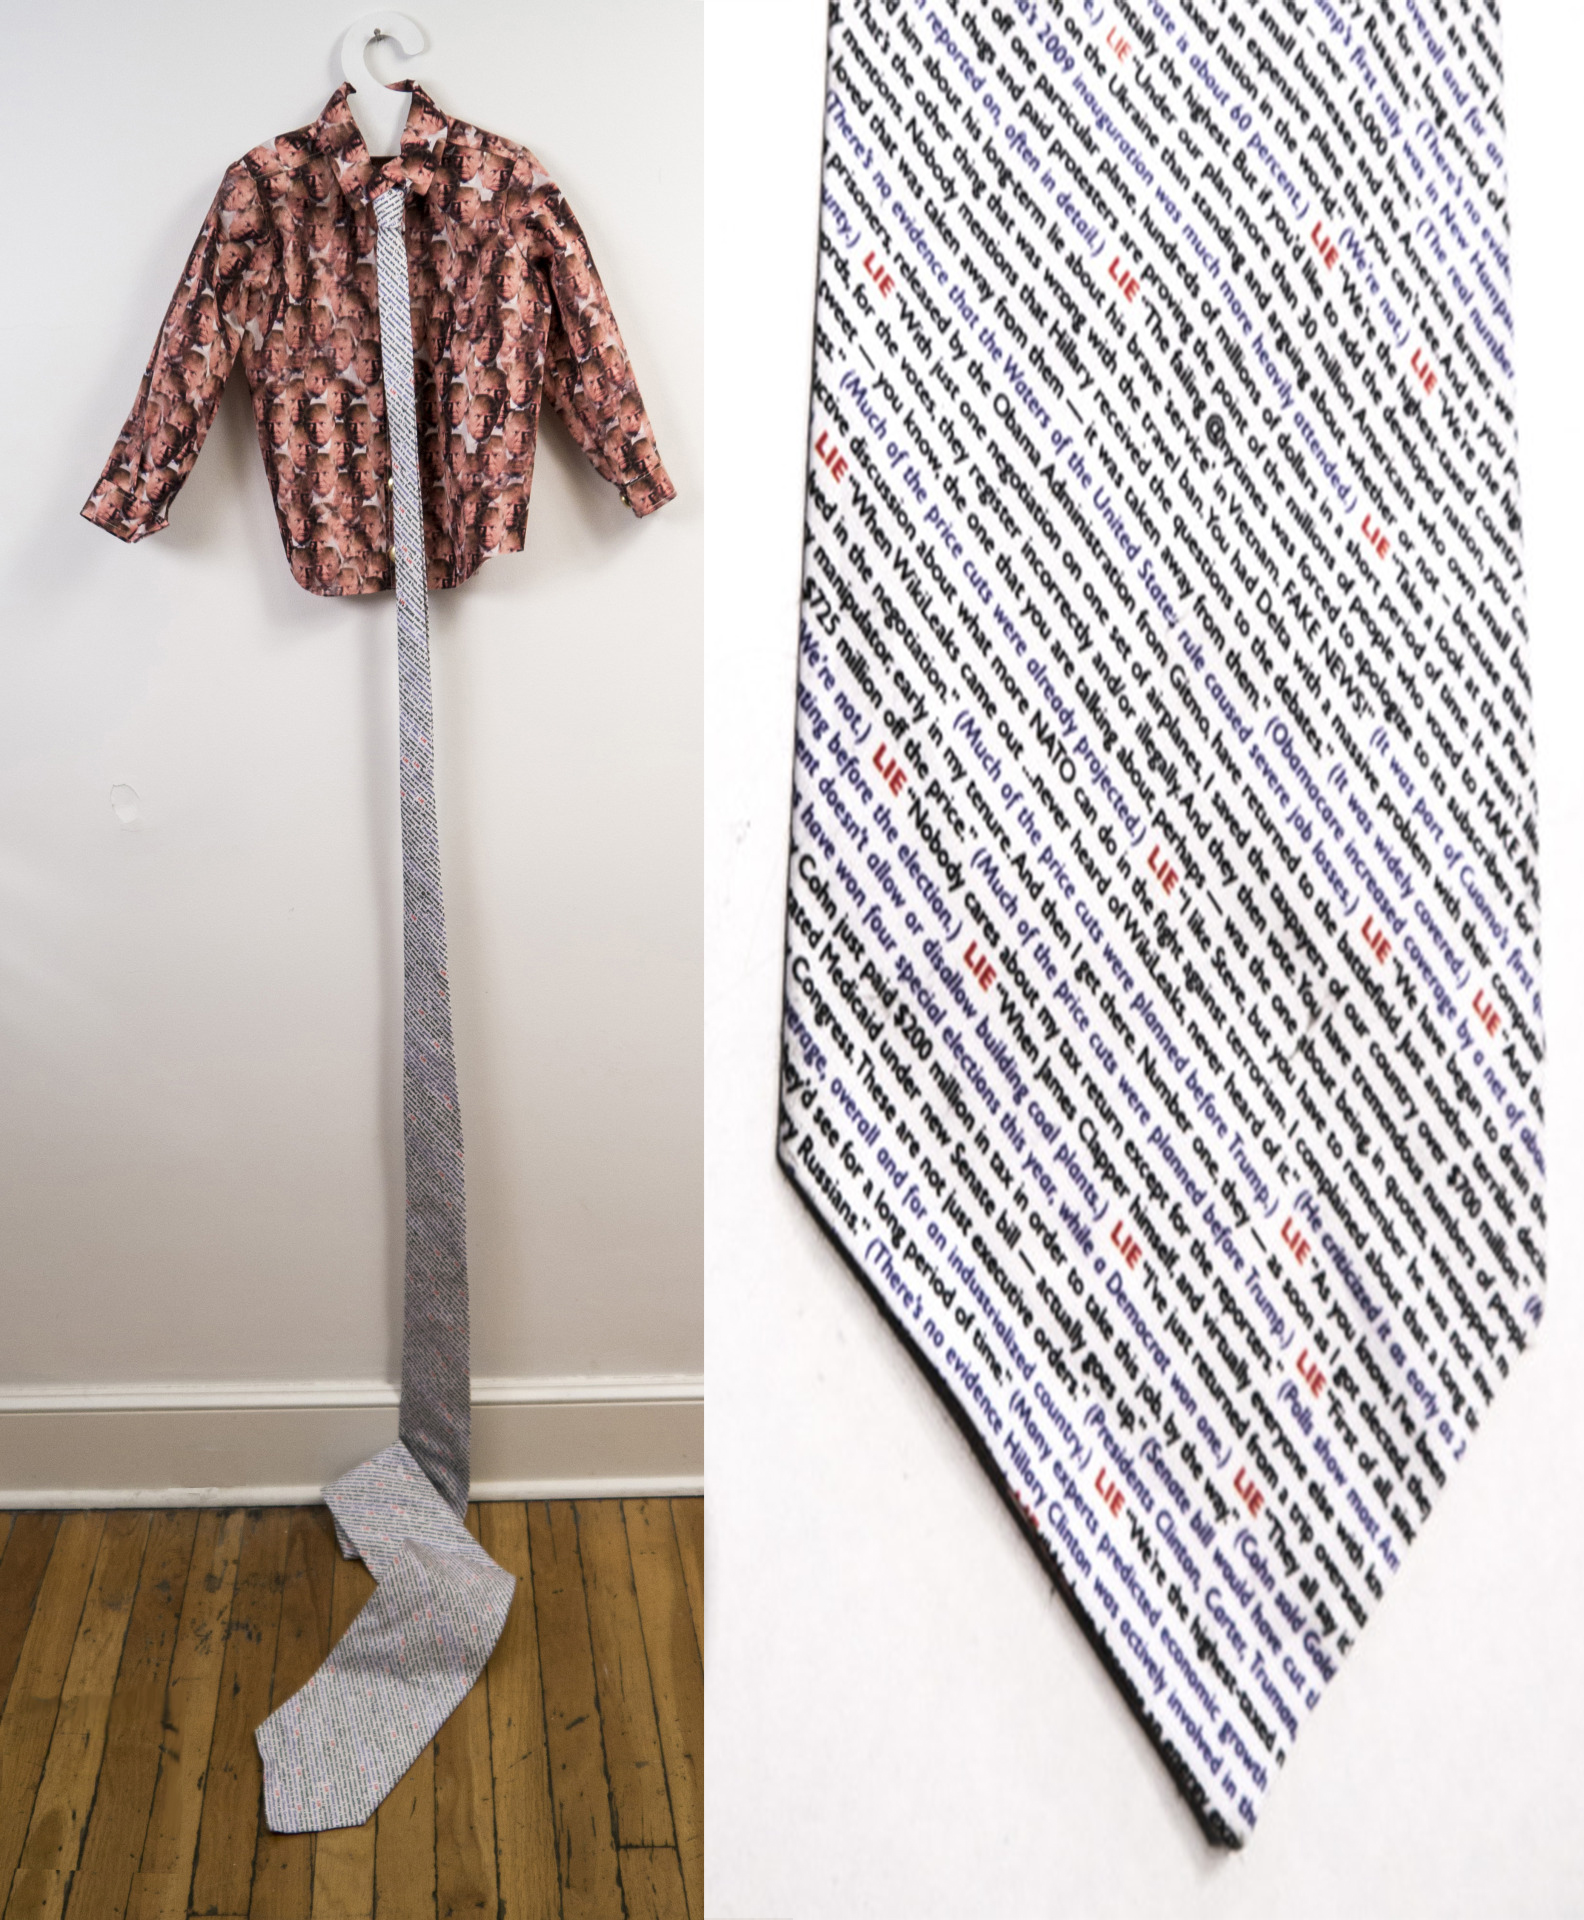 Liar's Couture  , is comprised of a toddler shirt sewn from digitally printed fabric with faces of the 45th President of the United States, and a hand sewn tie created with digitally printed fabric, that was printed with text of the lies of the president, beginning with his campaign in 2016 through December 2017. Created for the exhibition,  Disillusionment at Taller Boricua in New York City.  Disillusionment was conceptualized and developed by Robin Holder and Marina Gutierrez who then approached Taller Boricua to host the exhibition. More information about the show can be found  here